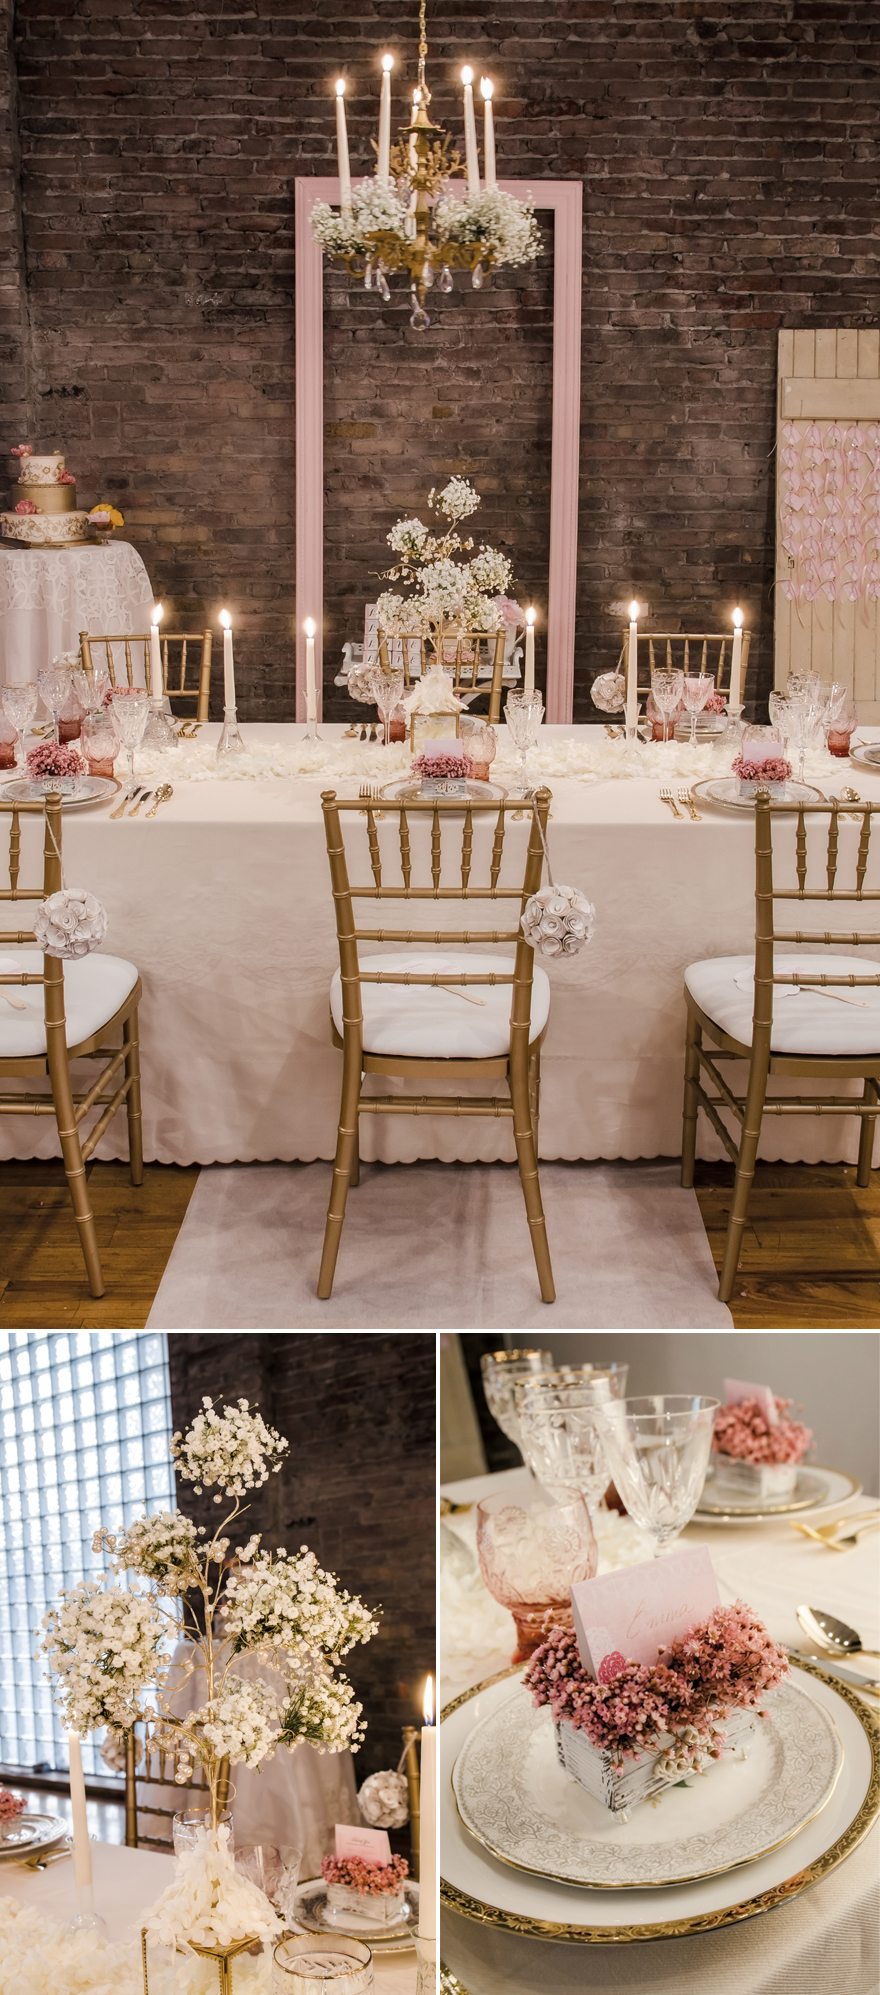 Romantic Pink and Gold Fairytale Wedding Reception Decor | Confetti.co.uk